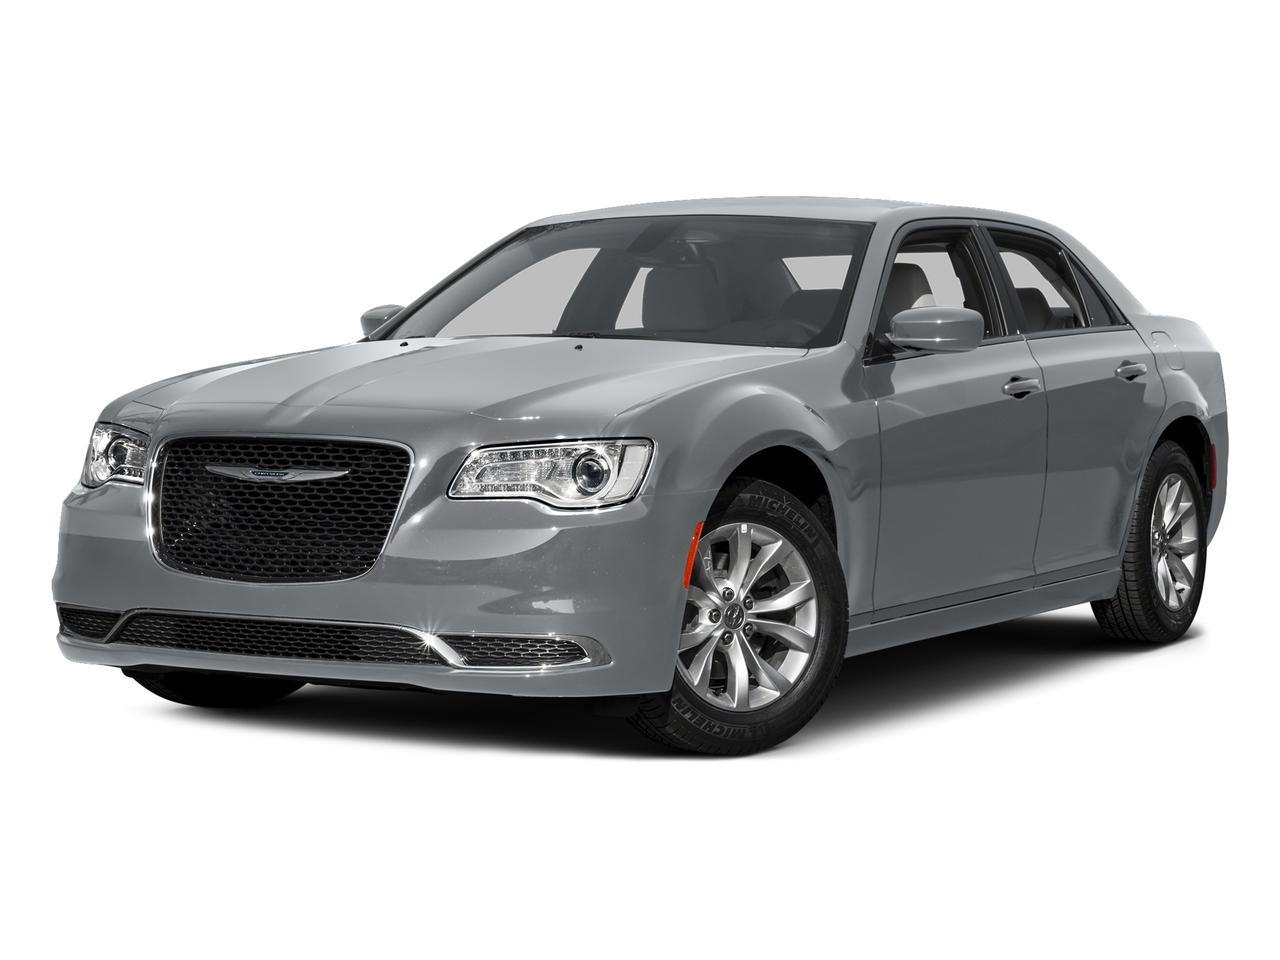 2015 Chrysler 300 Vehicle Photo in Tulsa, OK 74133